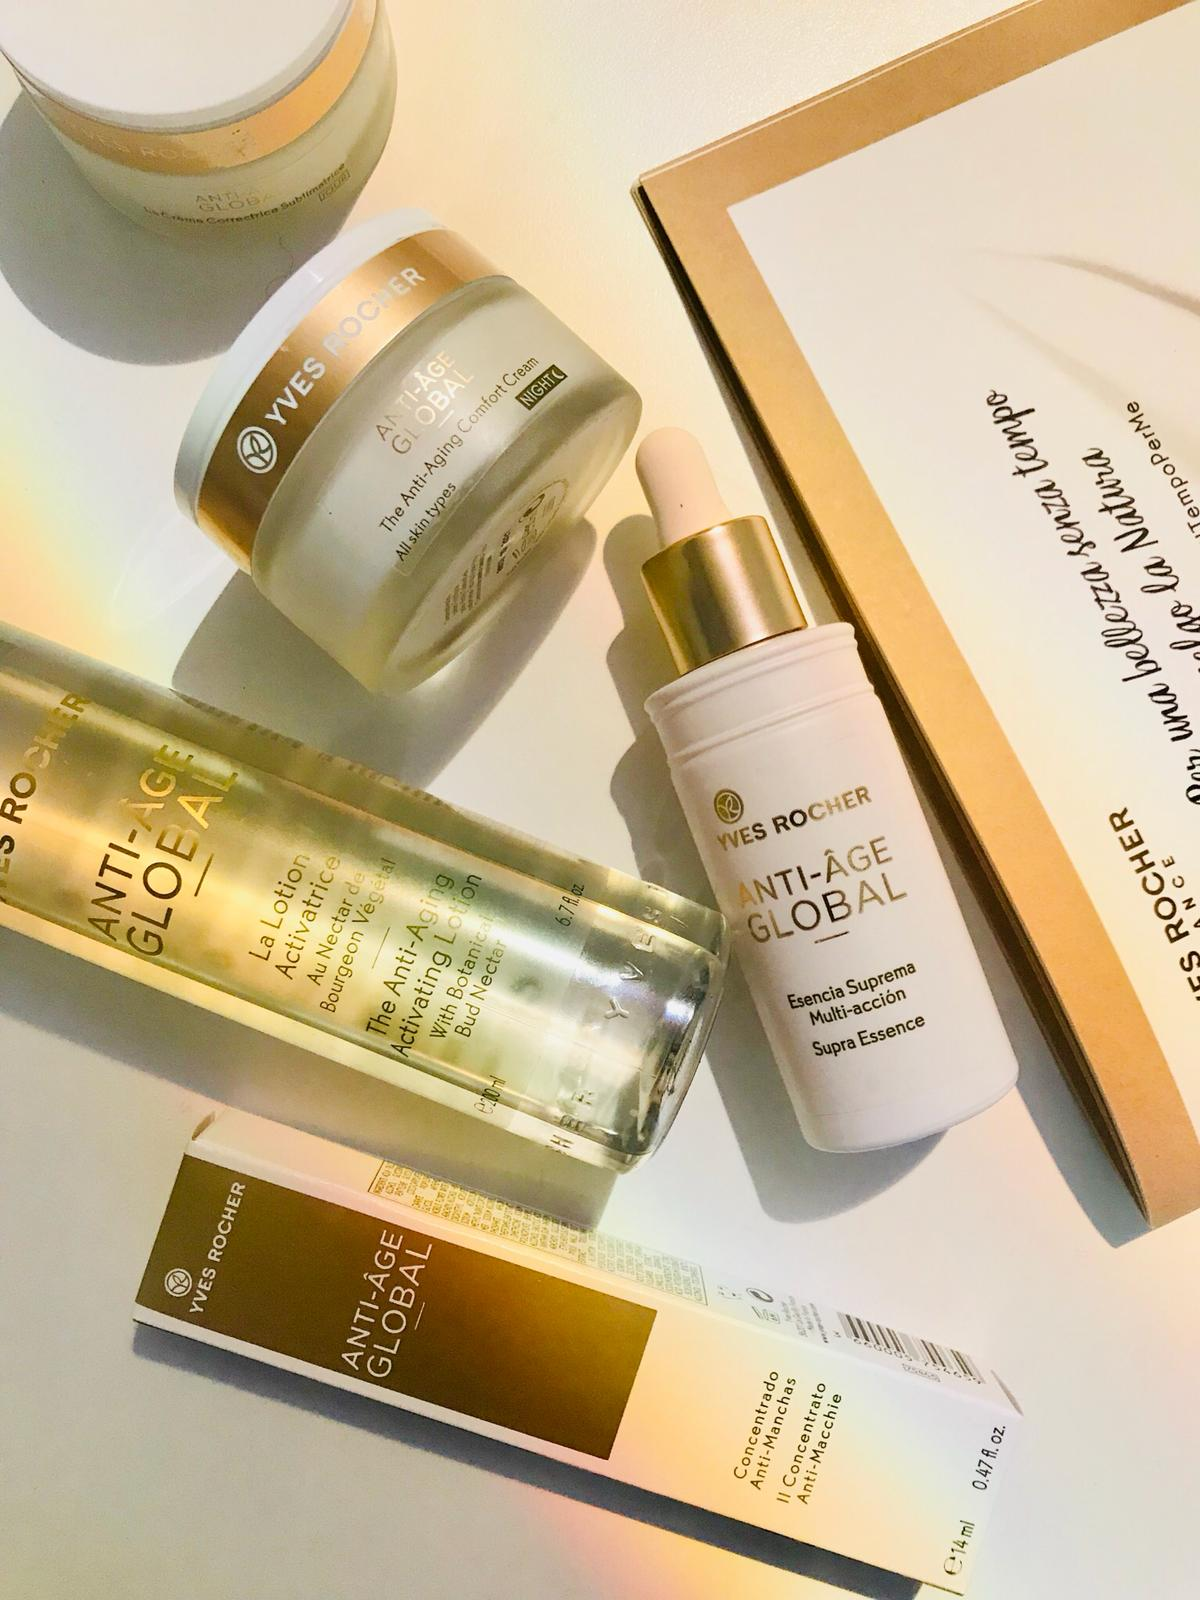 Anti Age Global La Cura Yves Rocher Recensioni